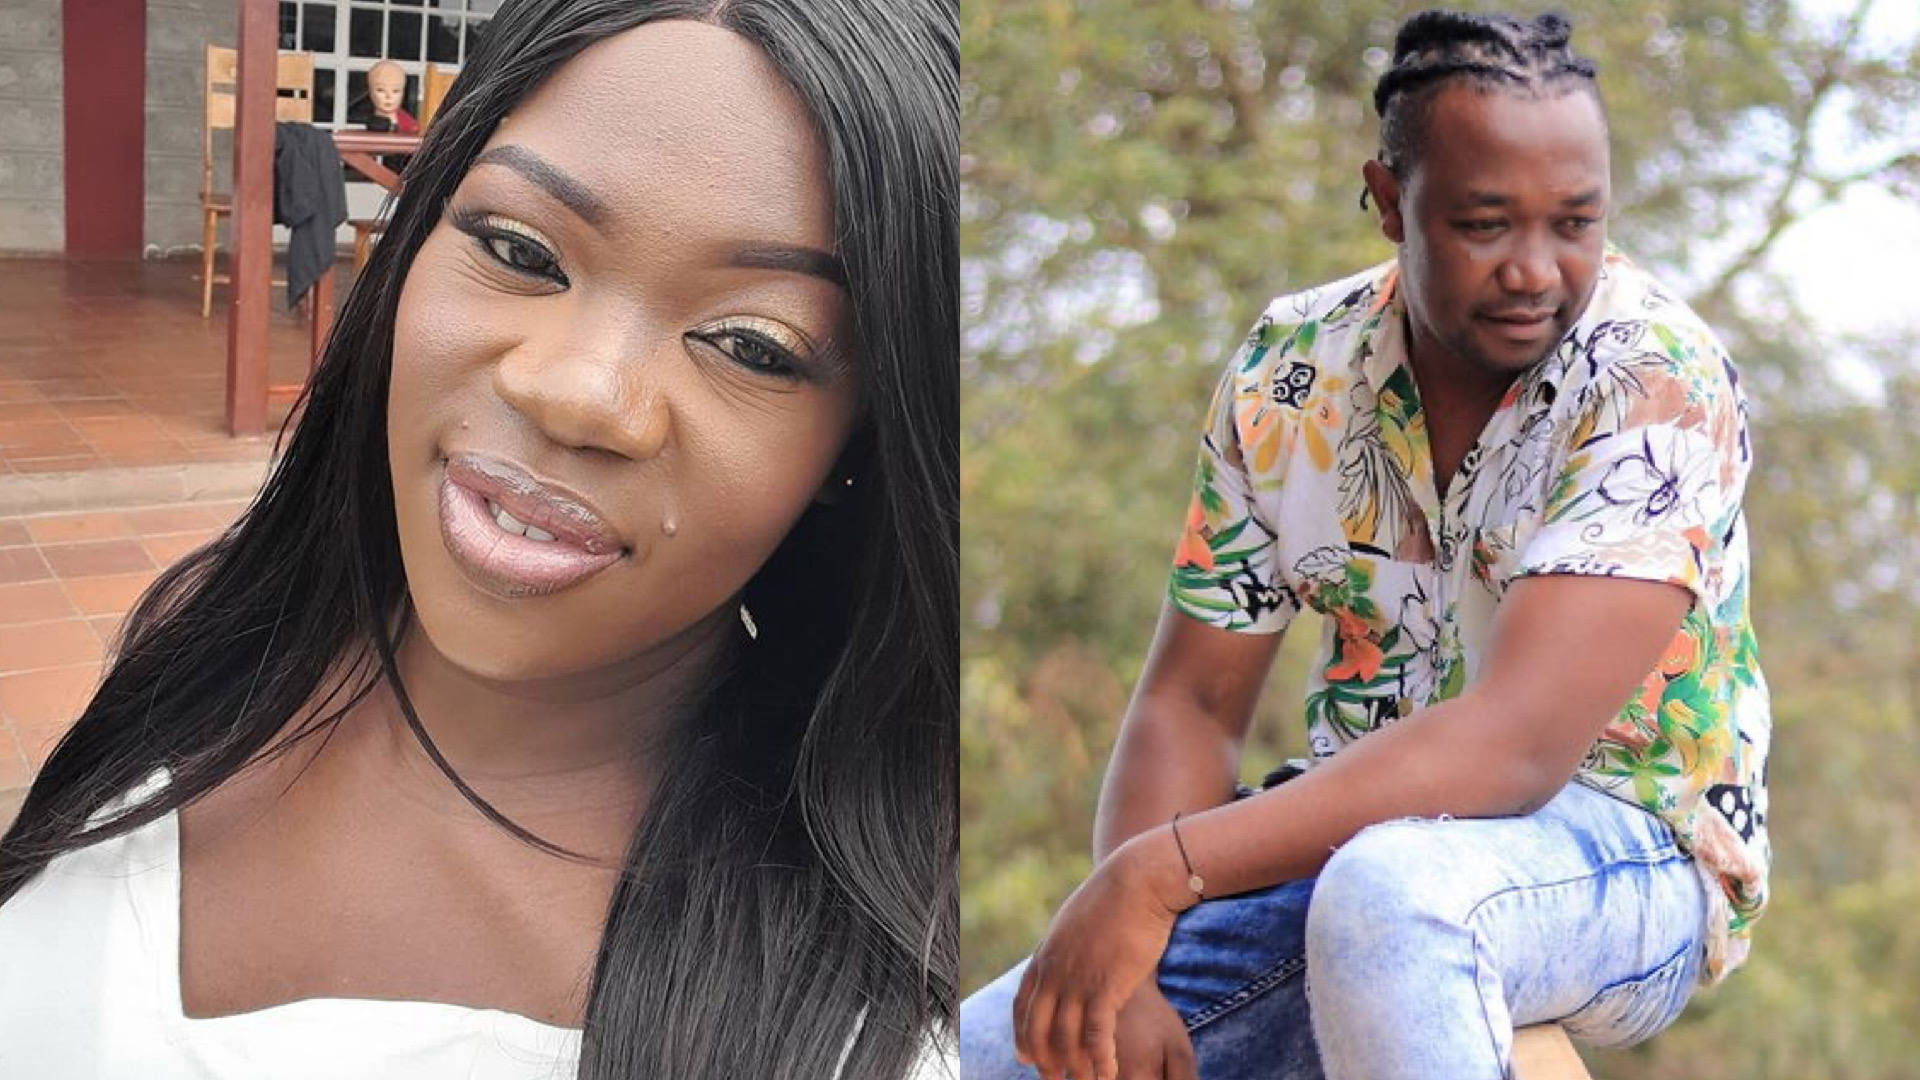 Ruth Matete's ex boyfriend addresses rumours claiming he squandered her TPF price money, Ksh5 million